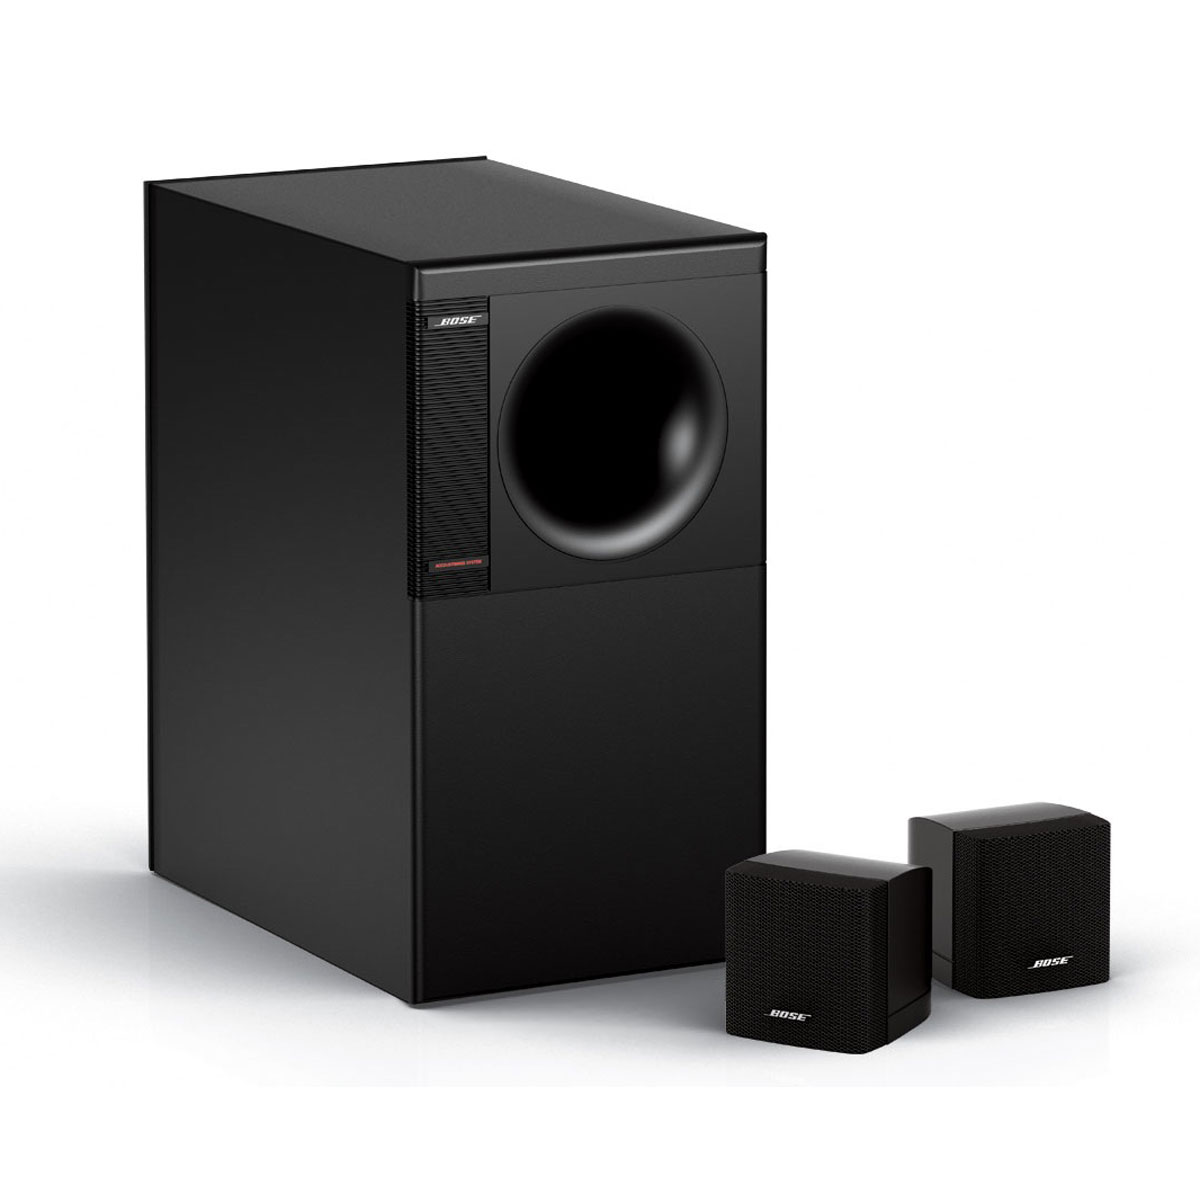 bose acoustimass 3 s rie iv noir am3ivbk achat vente enceintes hifi sur. Black Bedroom Furniture Sets. Home Design Ideas